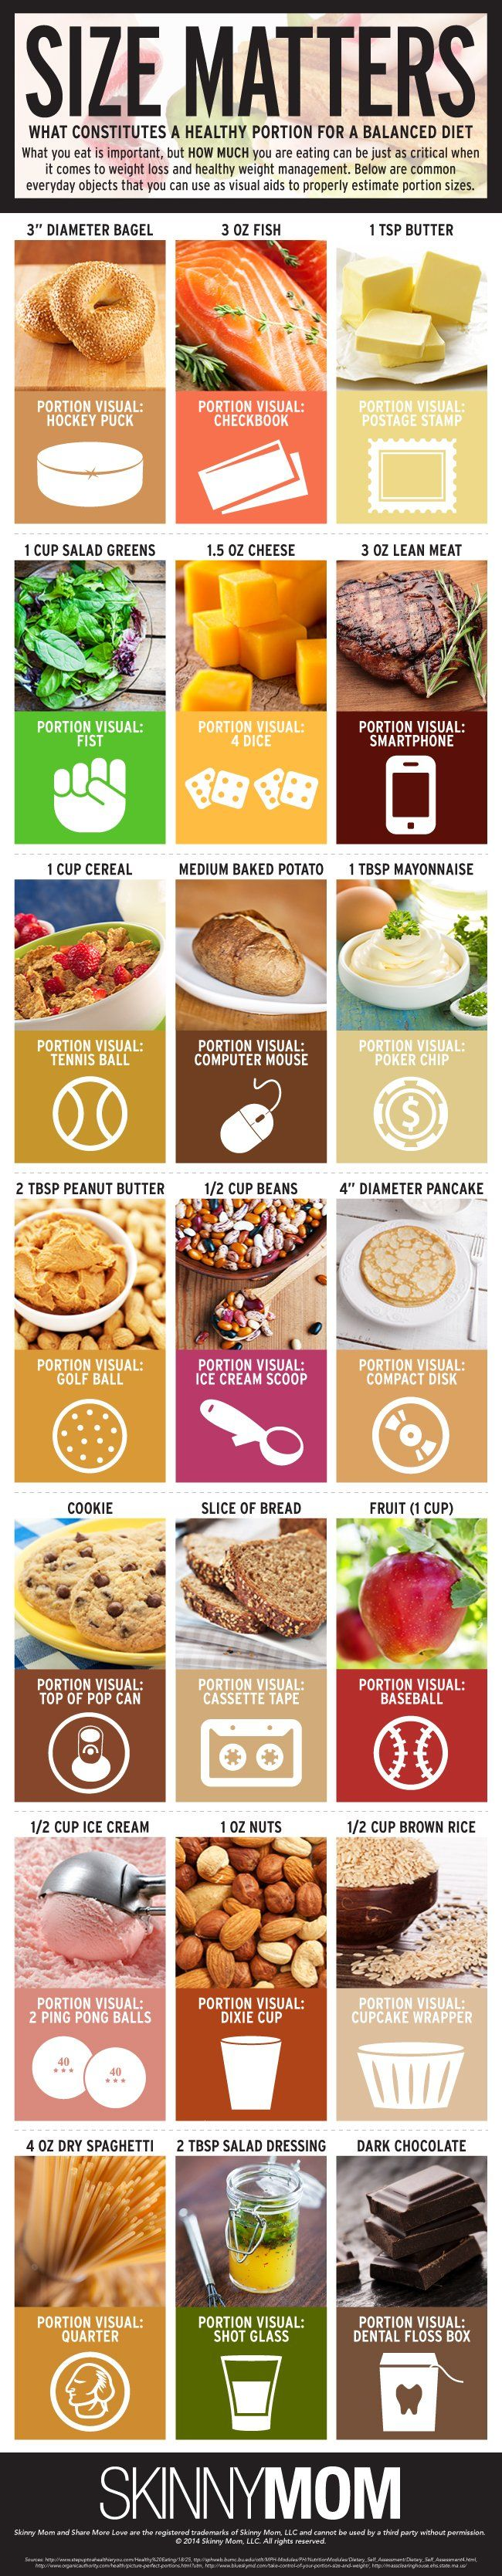 Food Proportions Portion distortion. [Infographic]